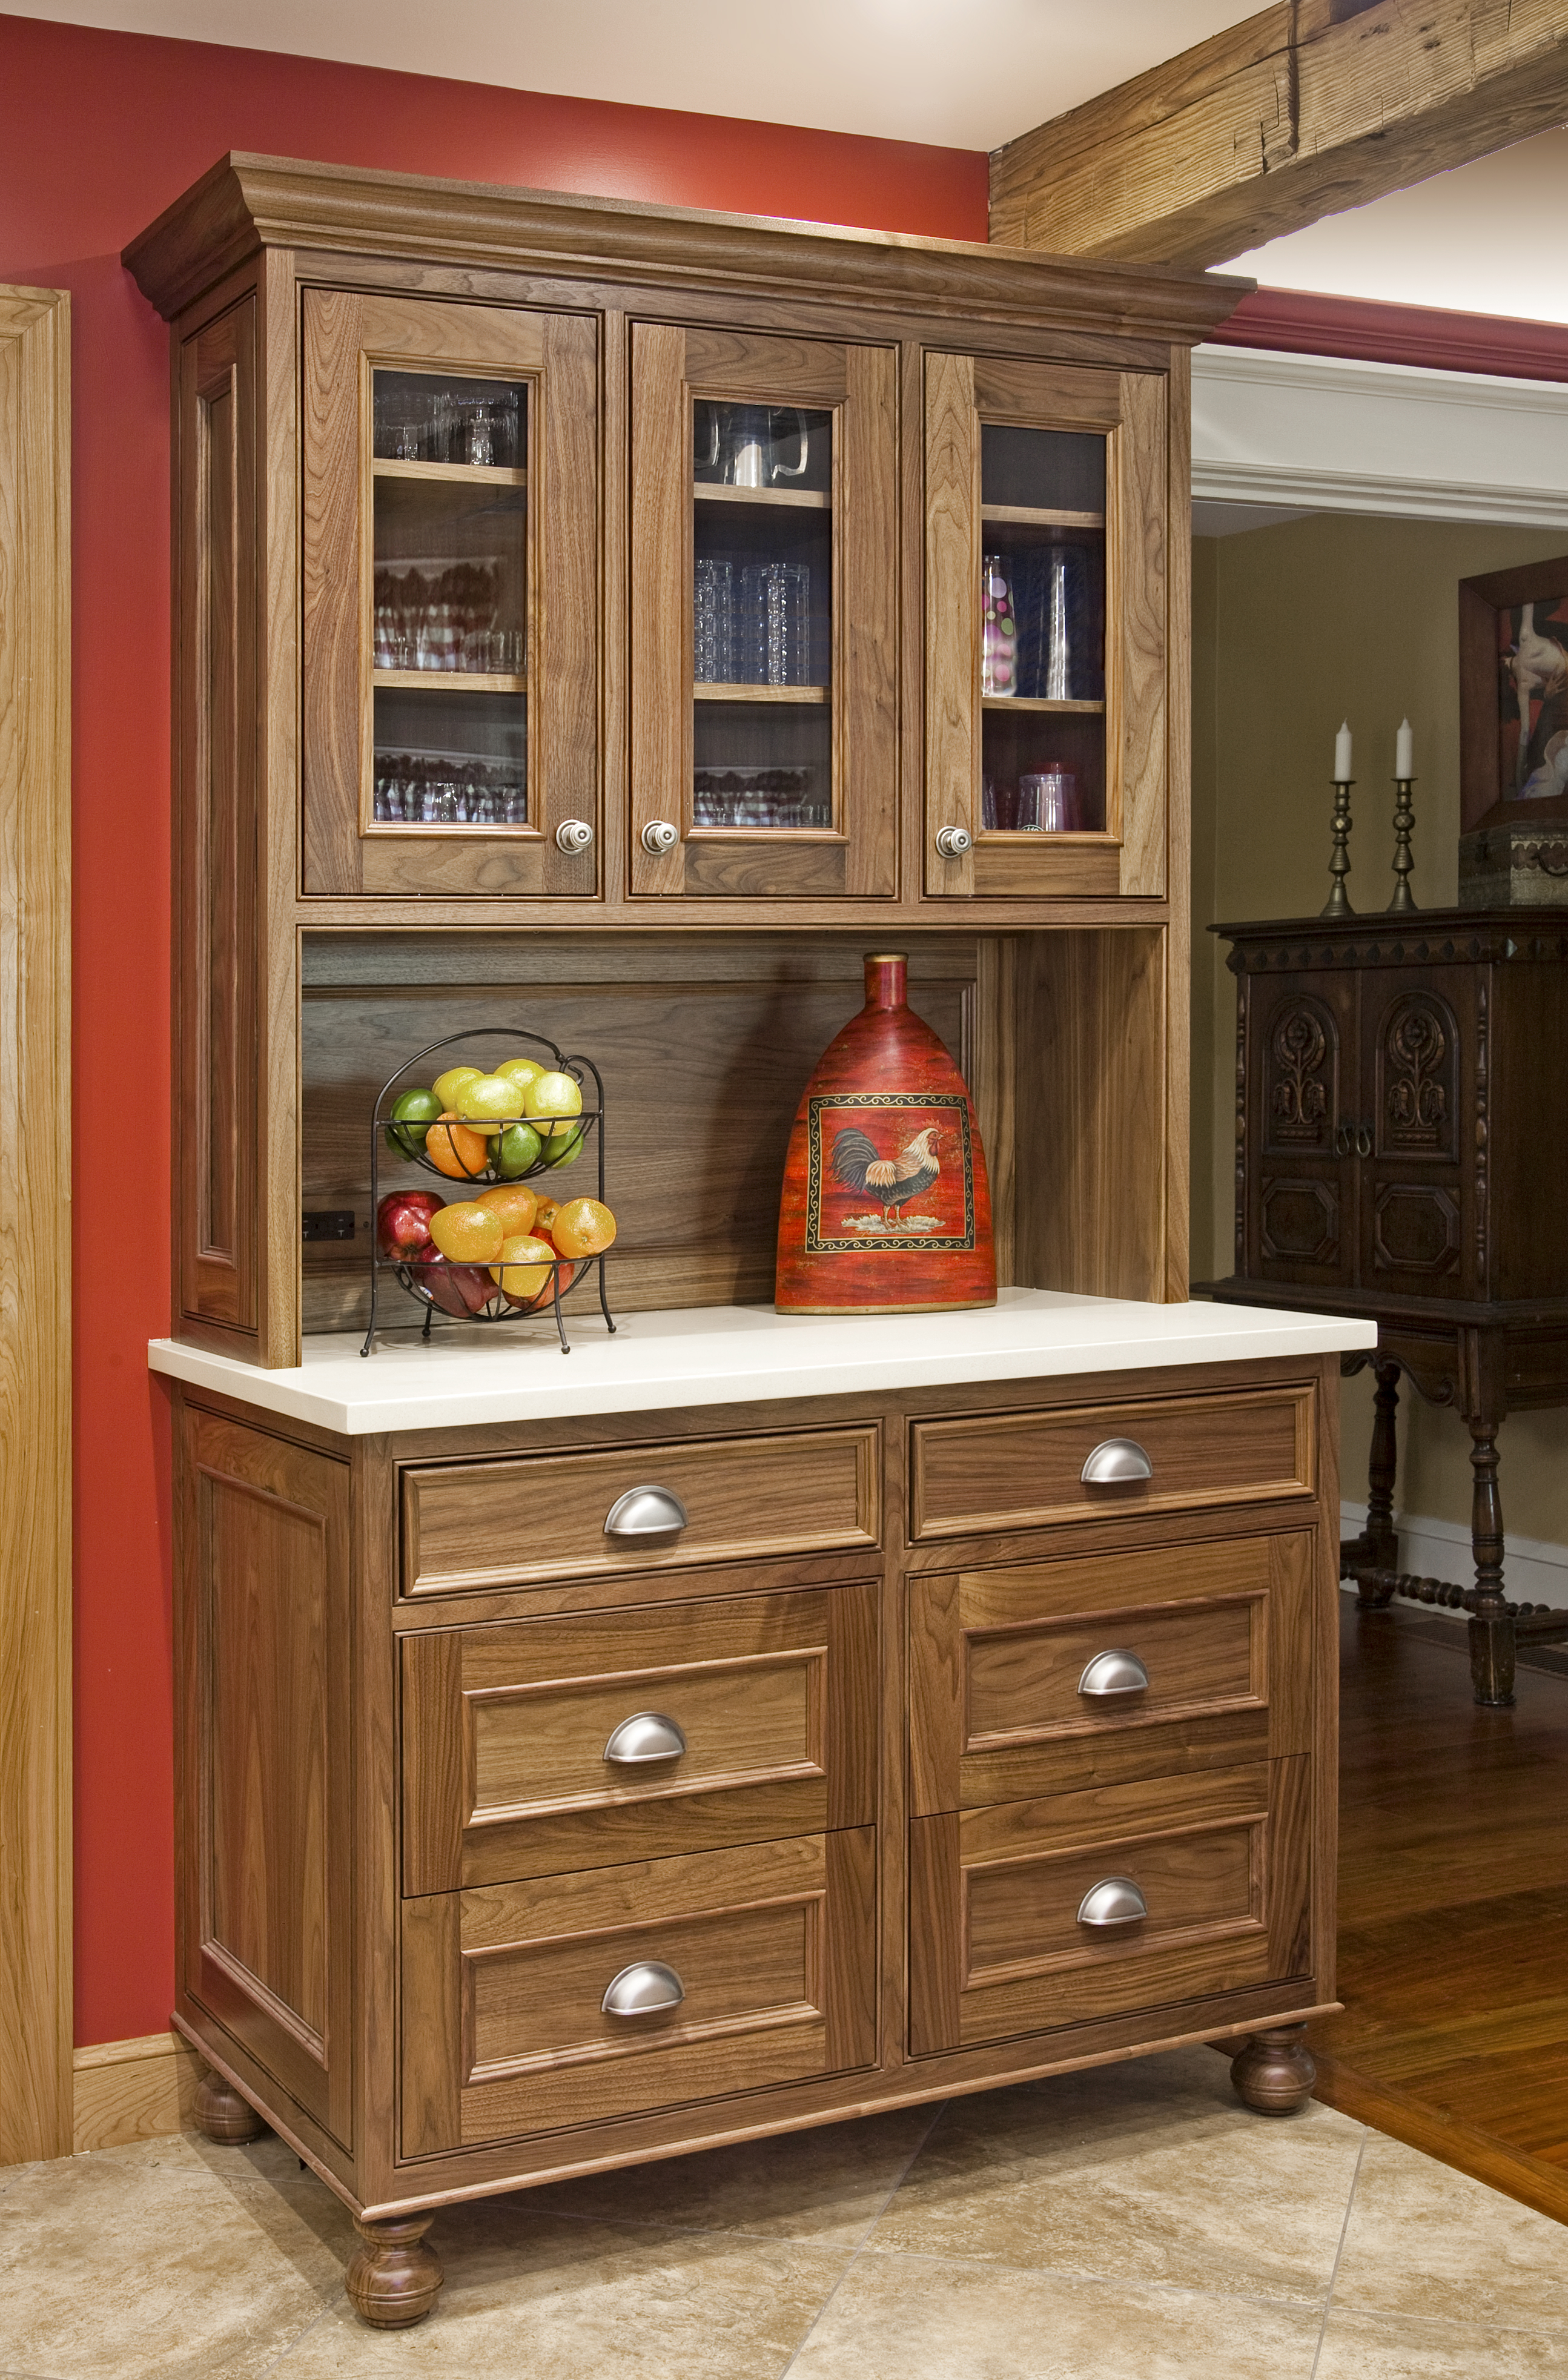 Stay tuned for more in this series, Get the Most Value When Remodeling ...